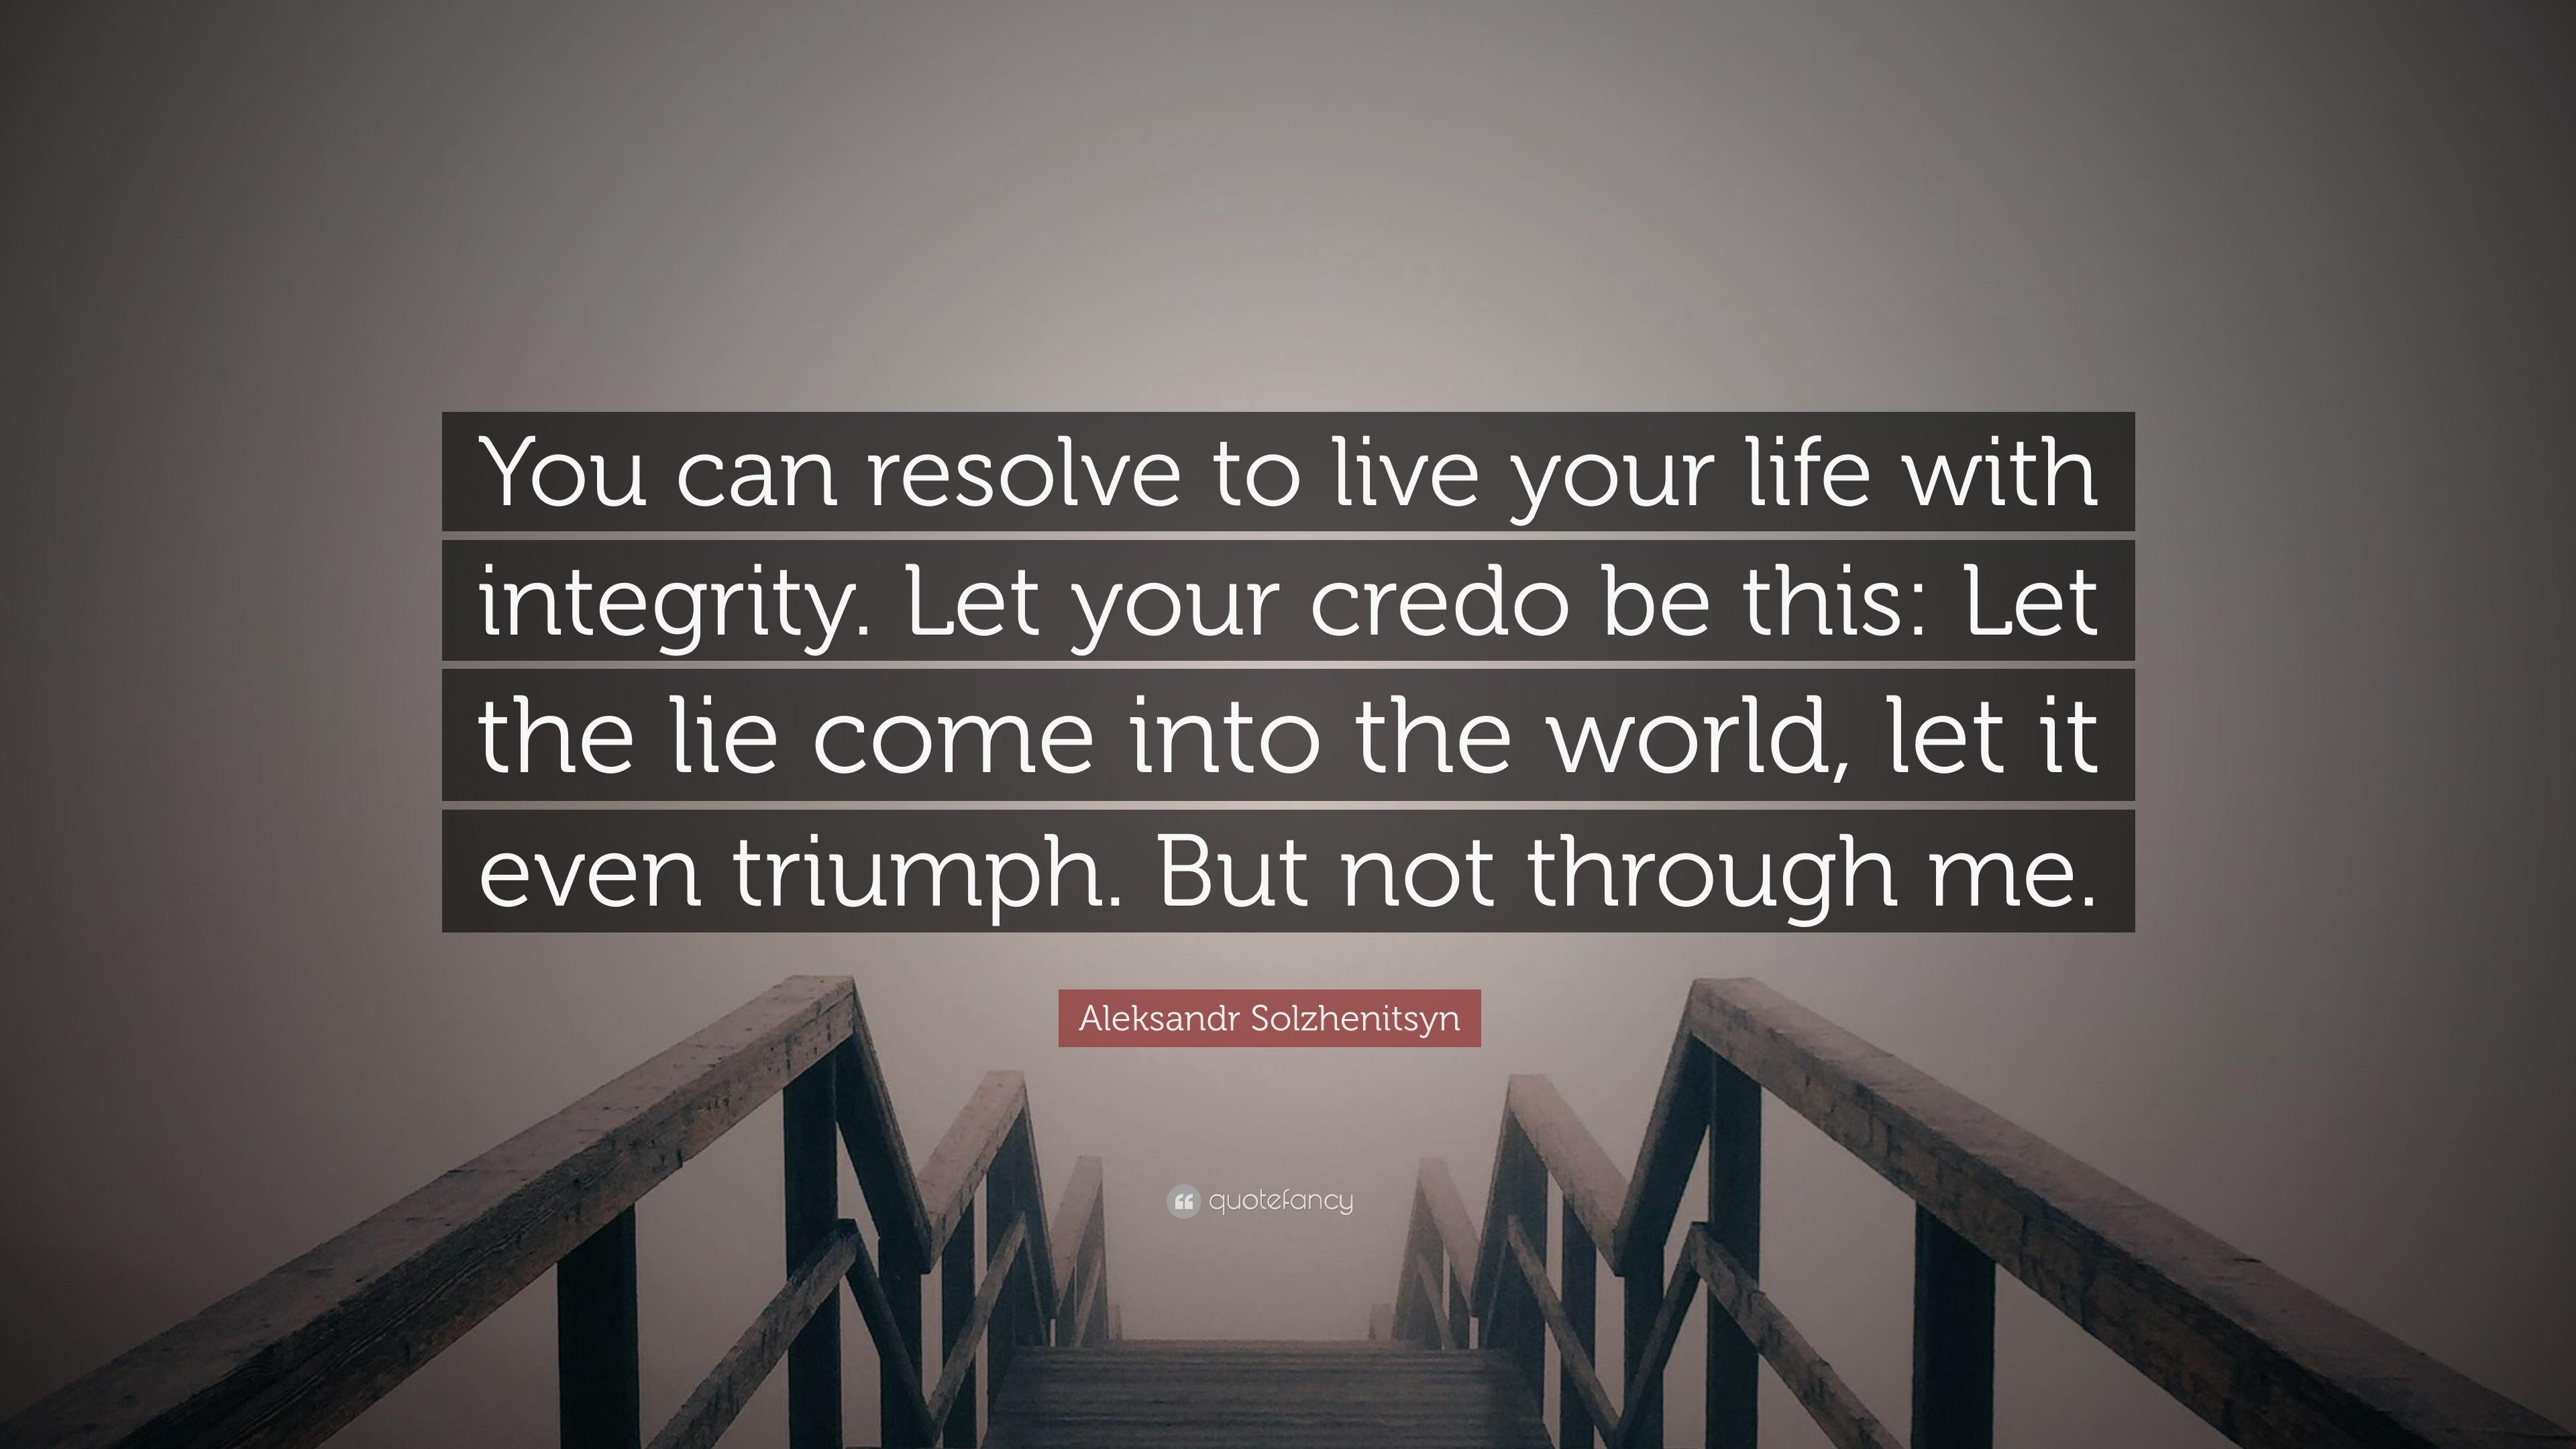 The power of words never ceases to amaze me. This gives me real courage. Aleksandr Solzhenitsyn. (3840×2160)